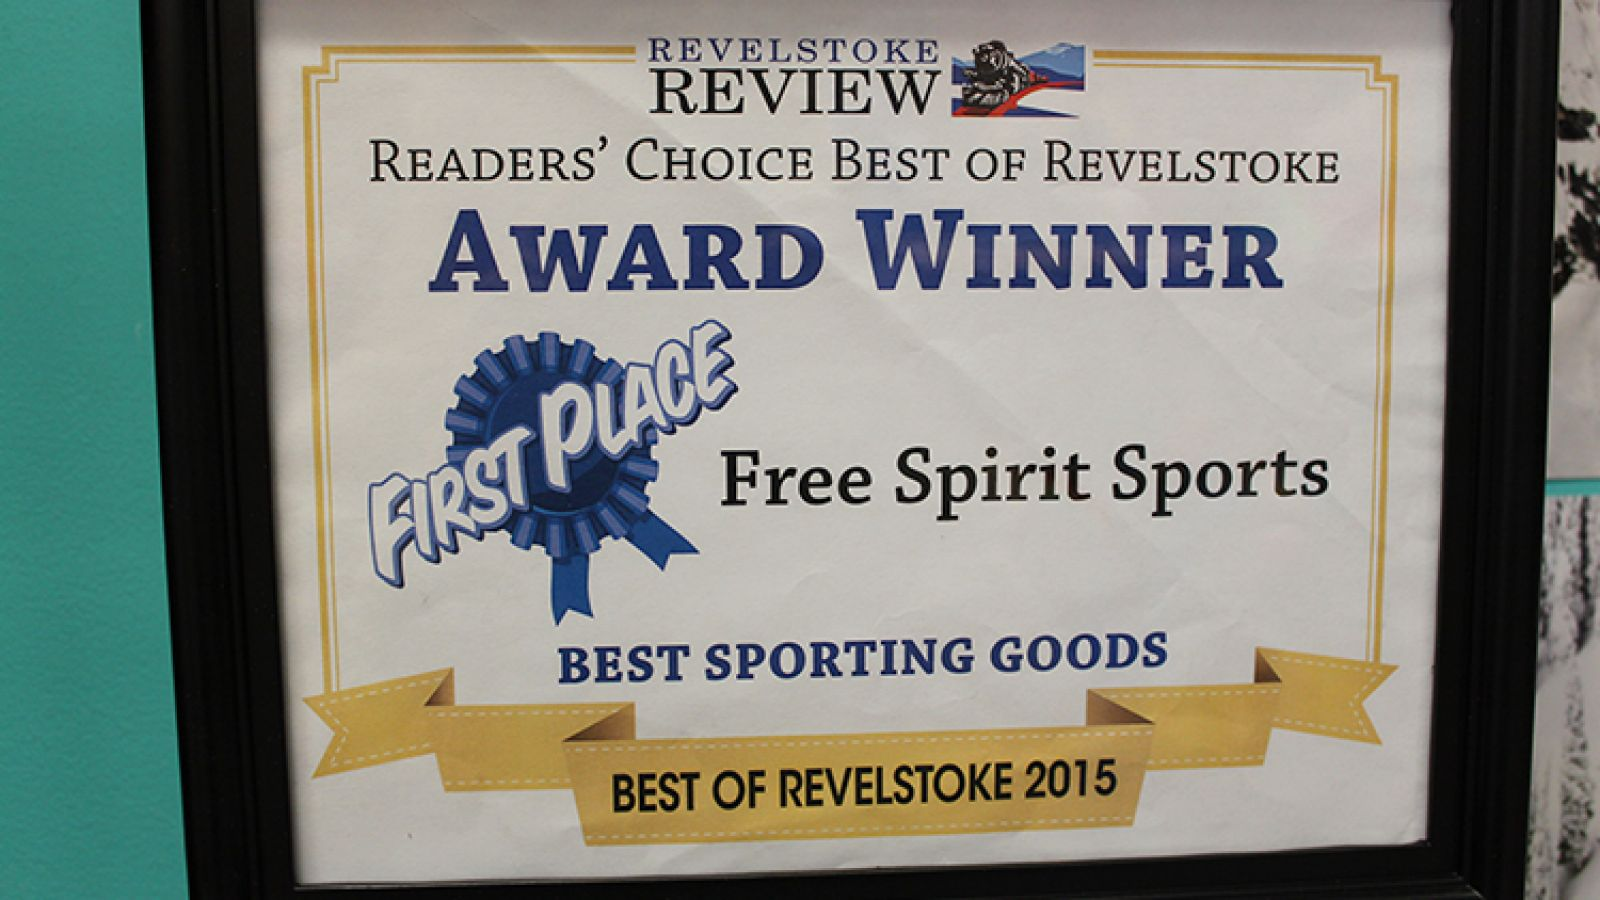 Award Winner: Best Sporting Goods.